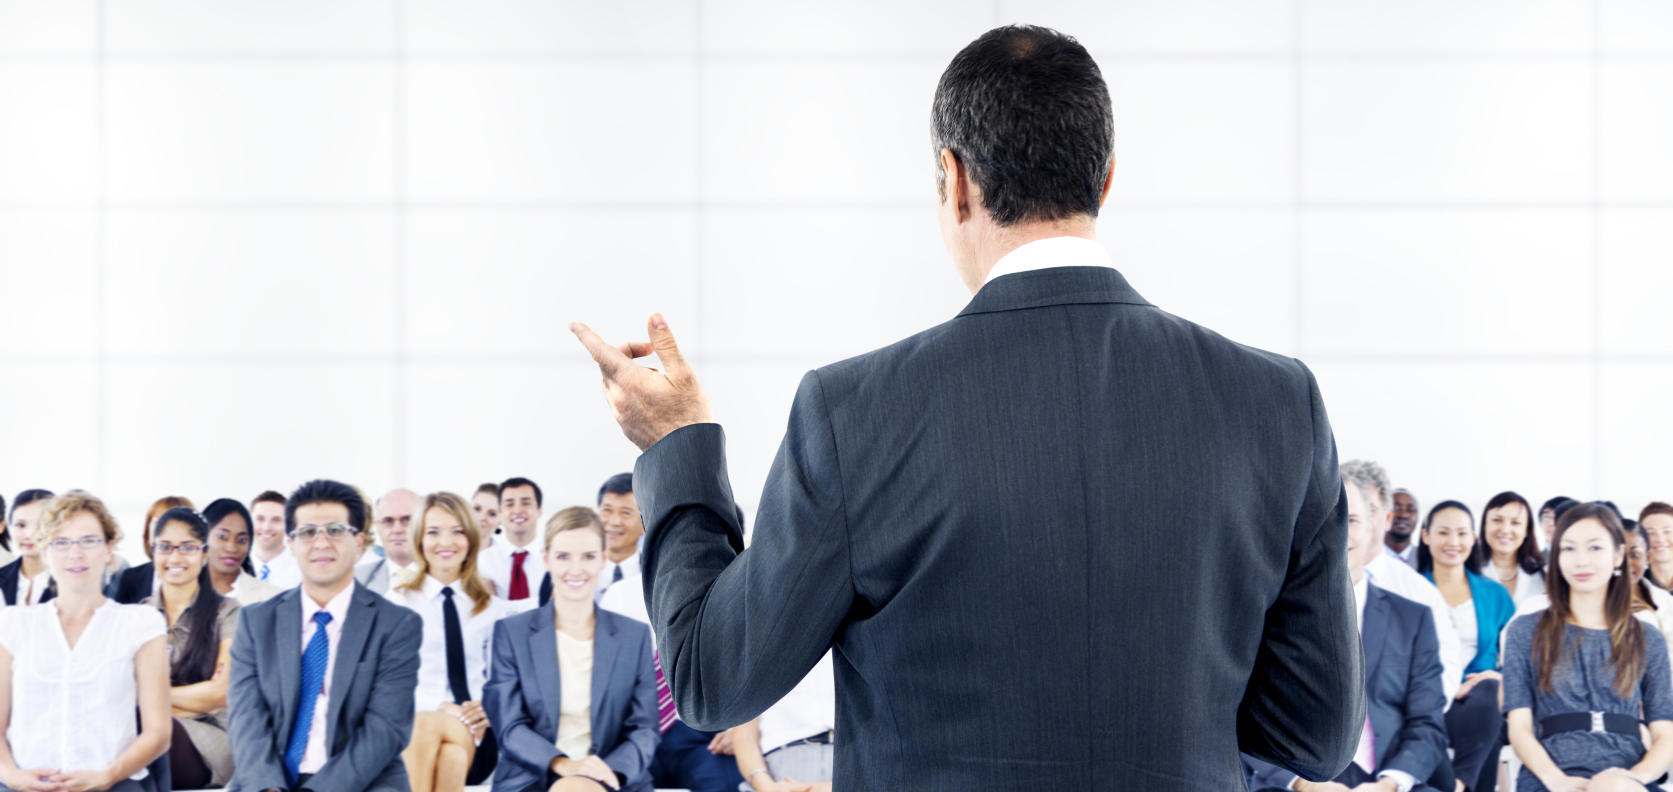 Man giving speech to large audience